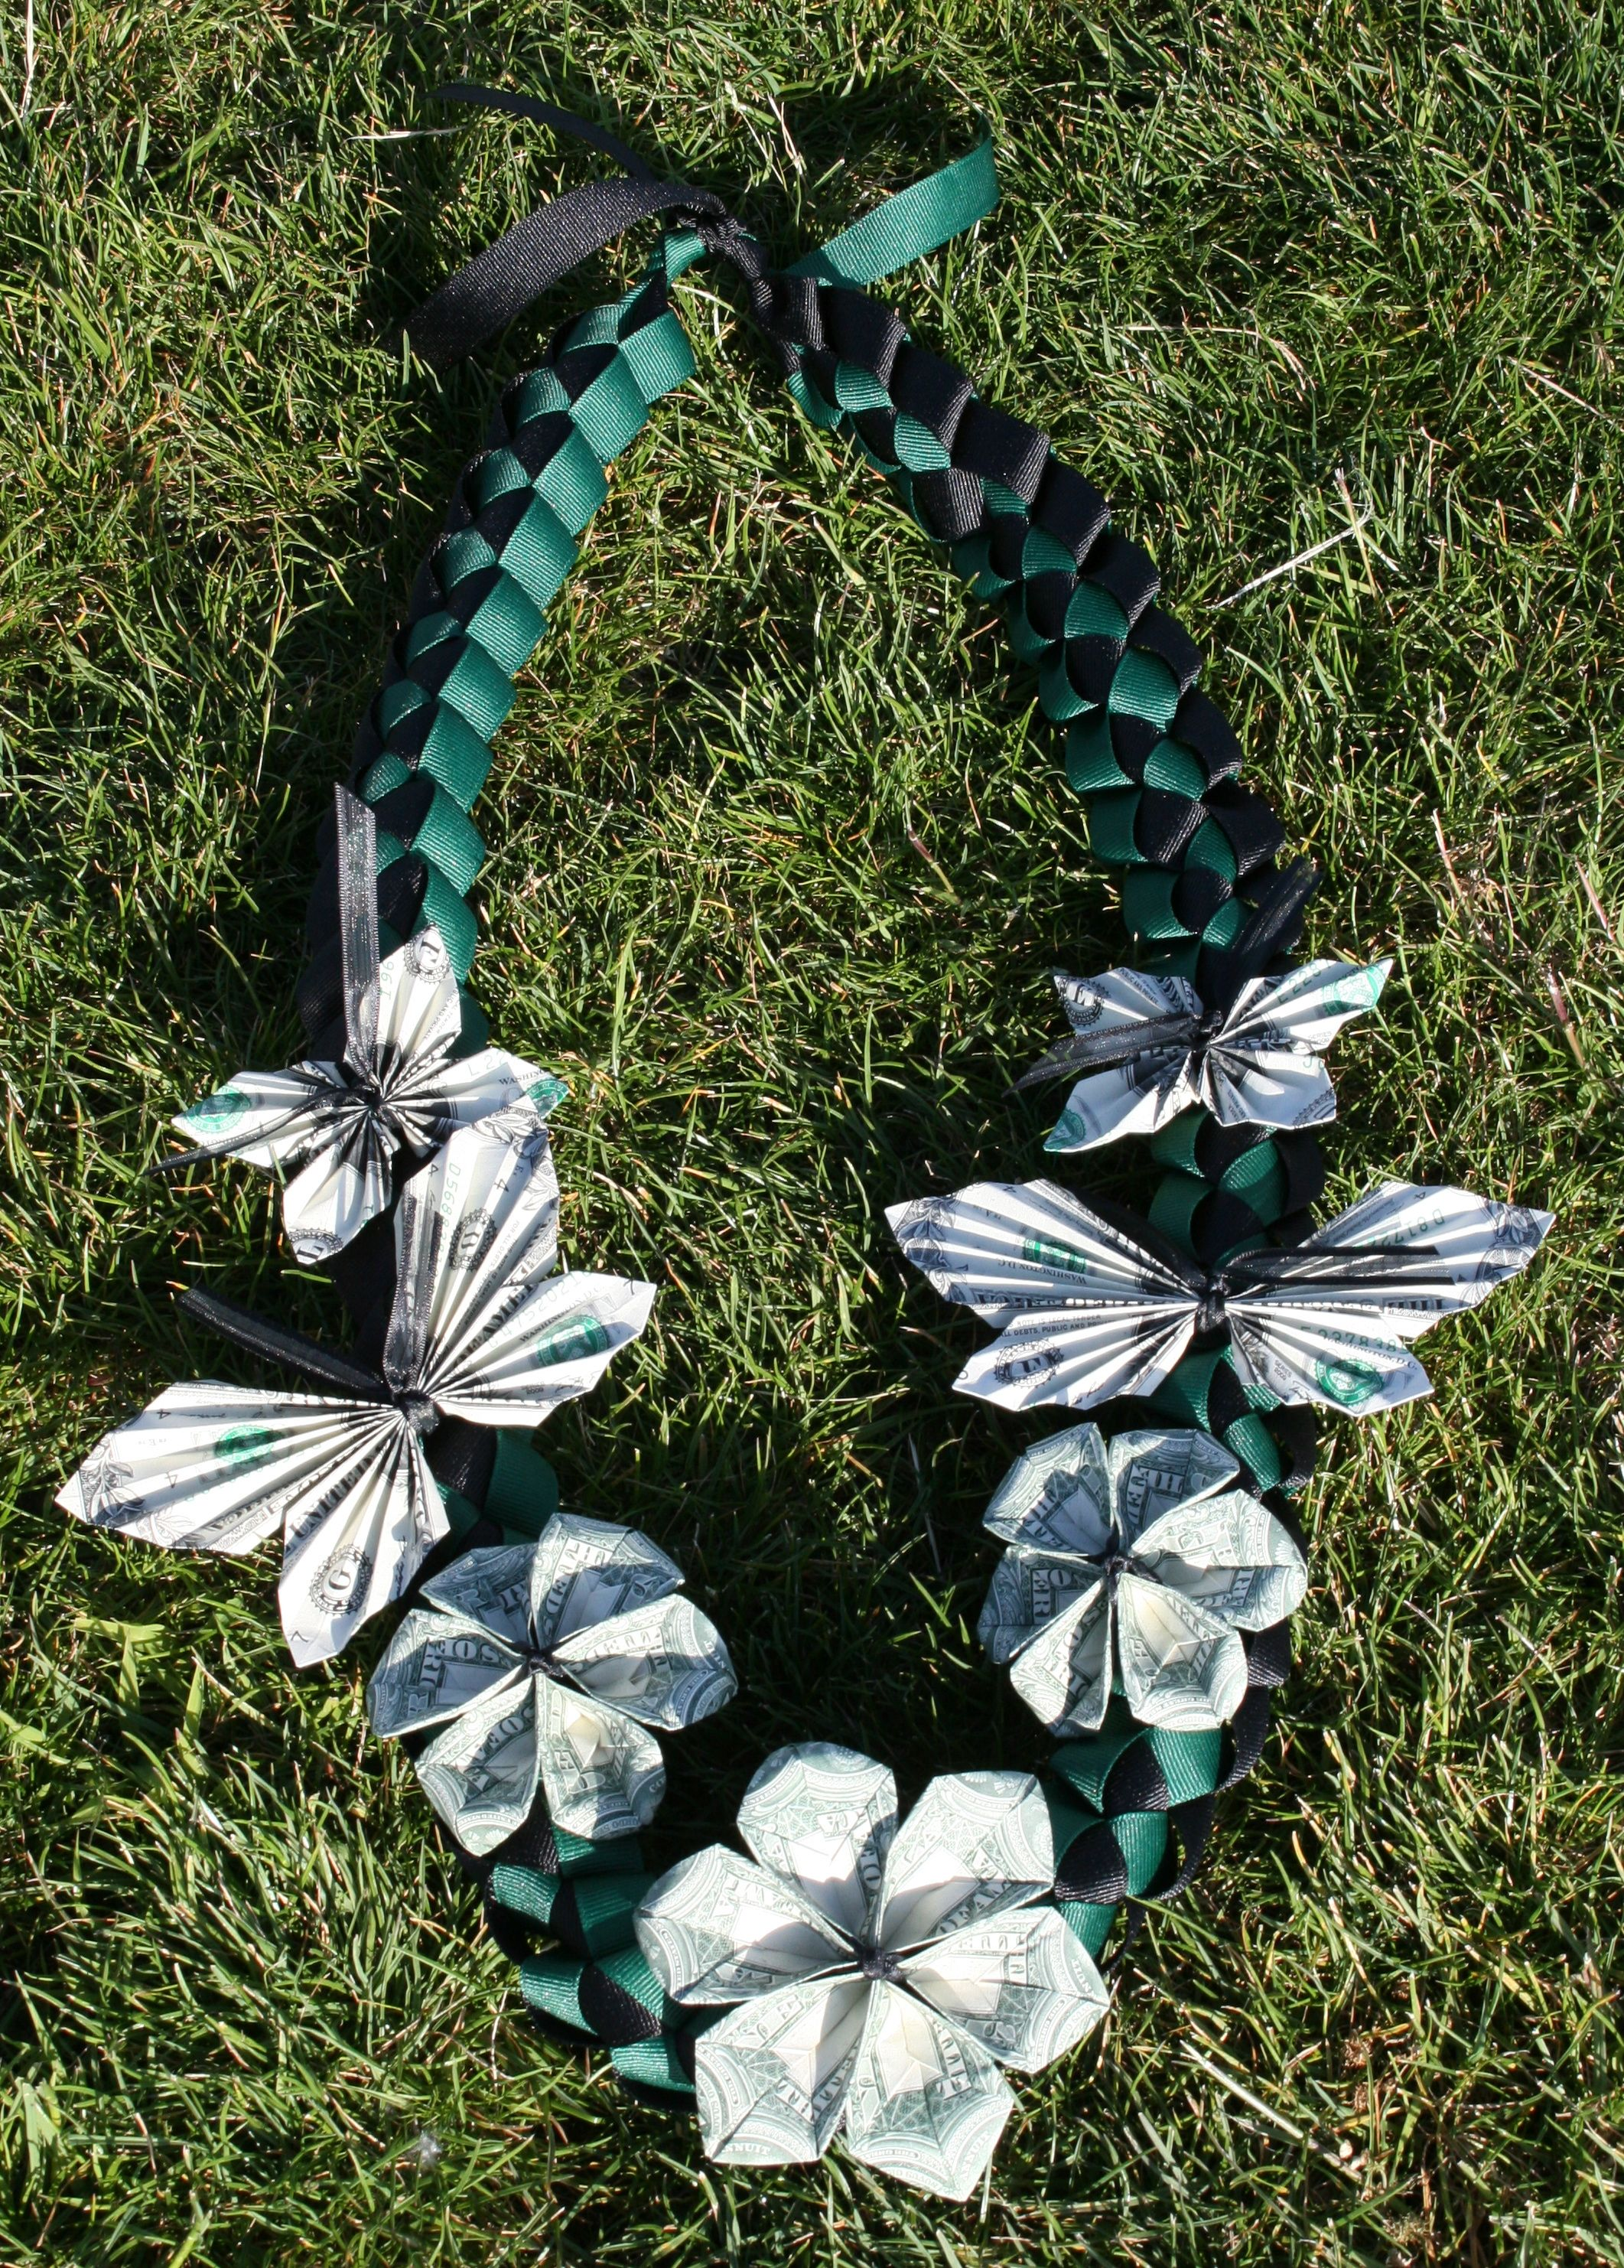 Find This Pin And More On Money Lei Fold Dollar Bills Into A Flower